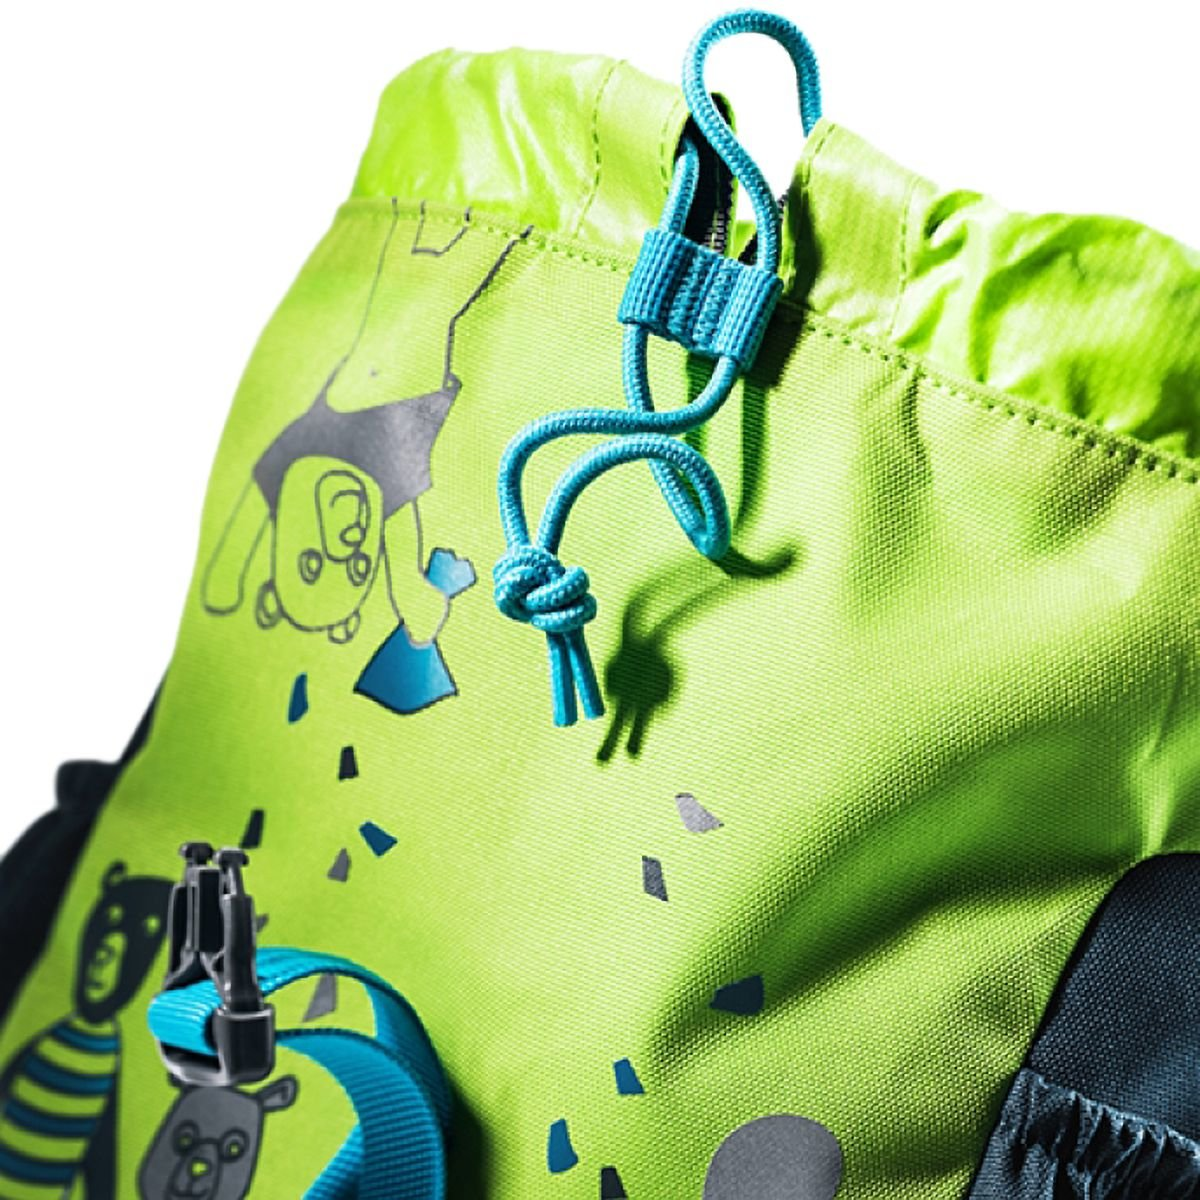 Рюкзак Deuter Schmusebar midnight-coolblue 8 Schmusebar 3612020 3303